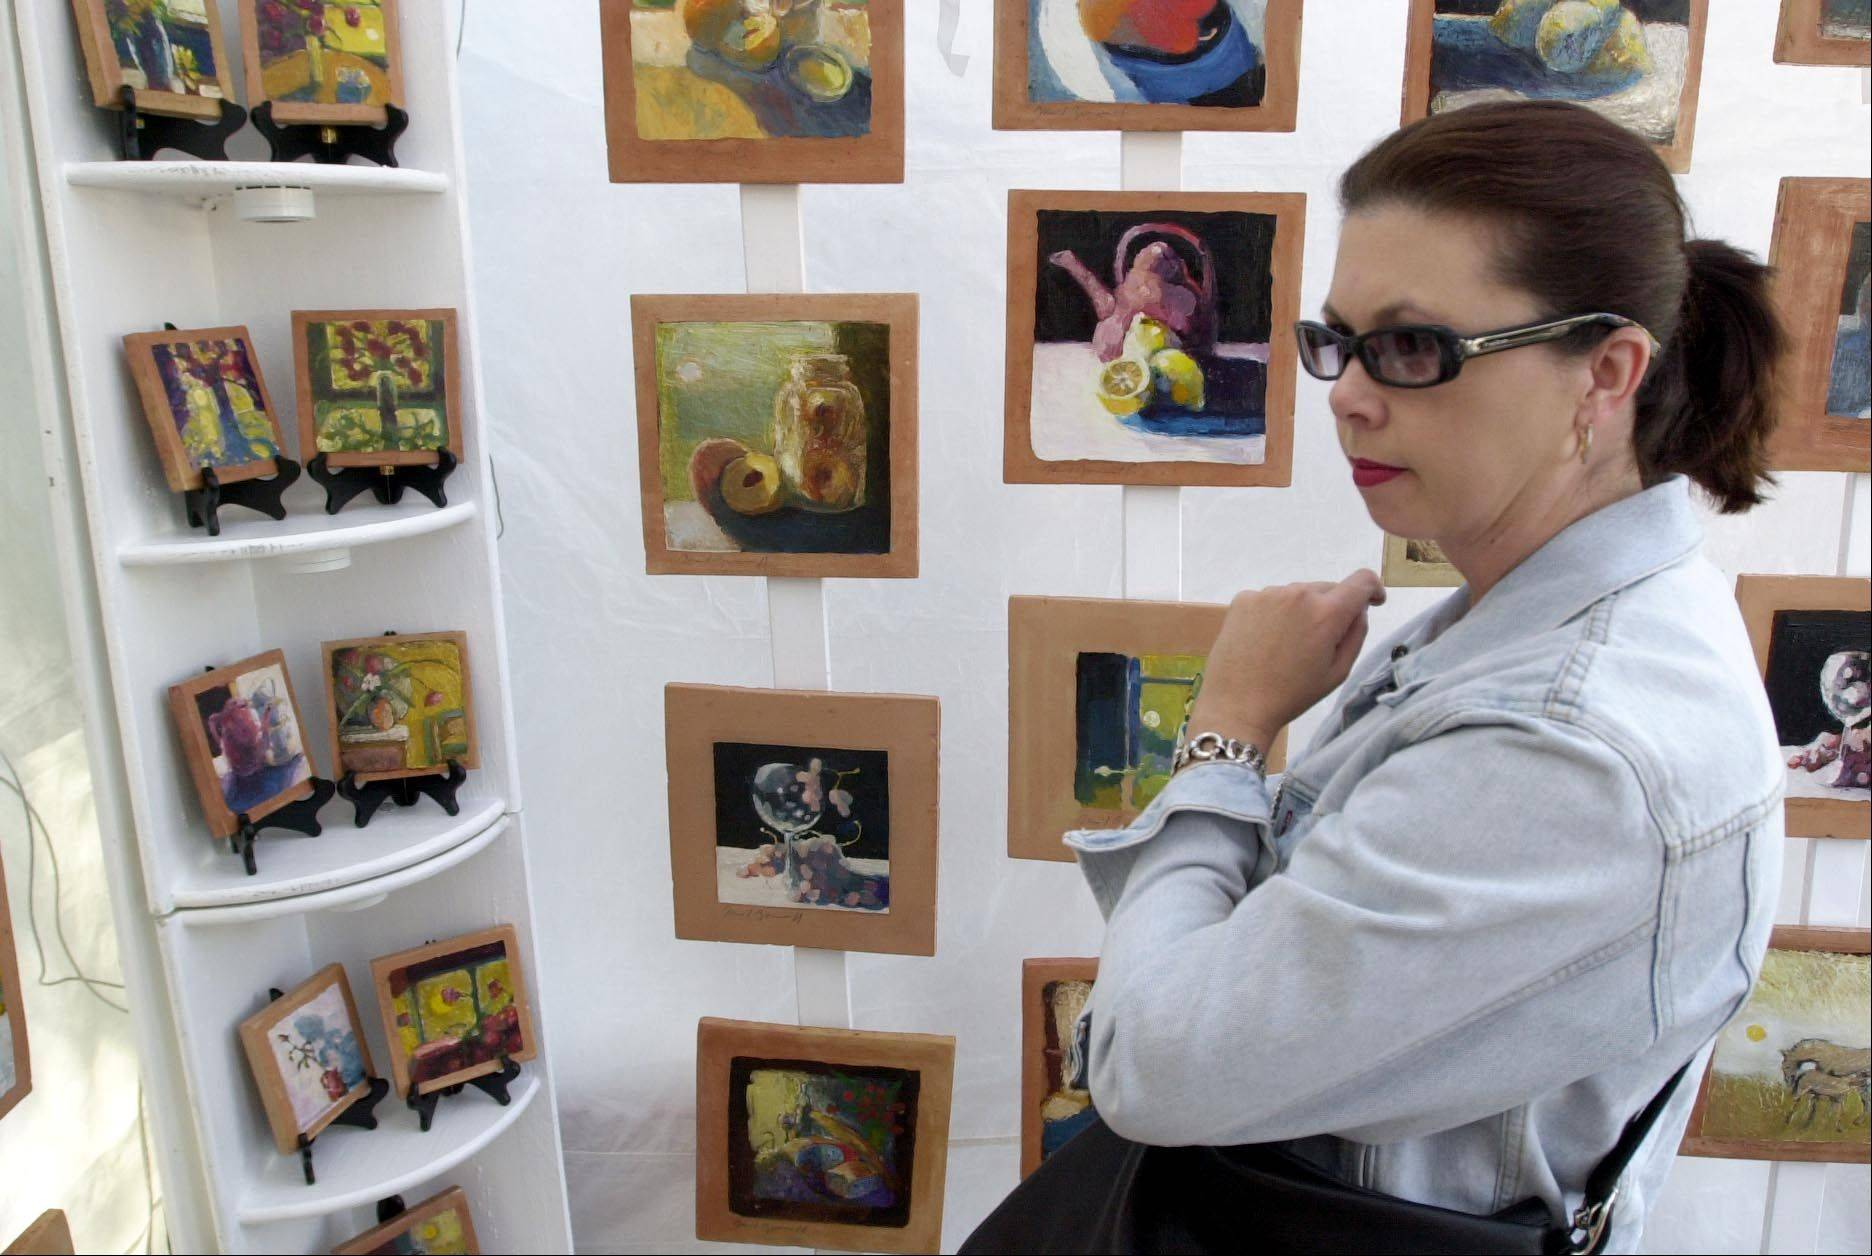 Visitors to the Riverwalk Fine Art Fair are treated to seeing original works by artists from all over the country. The fair runs Saturday and Sunday in downtown Naperville.